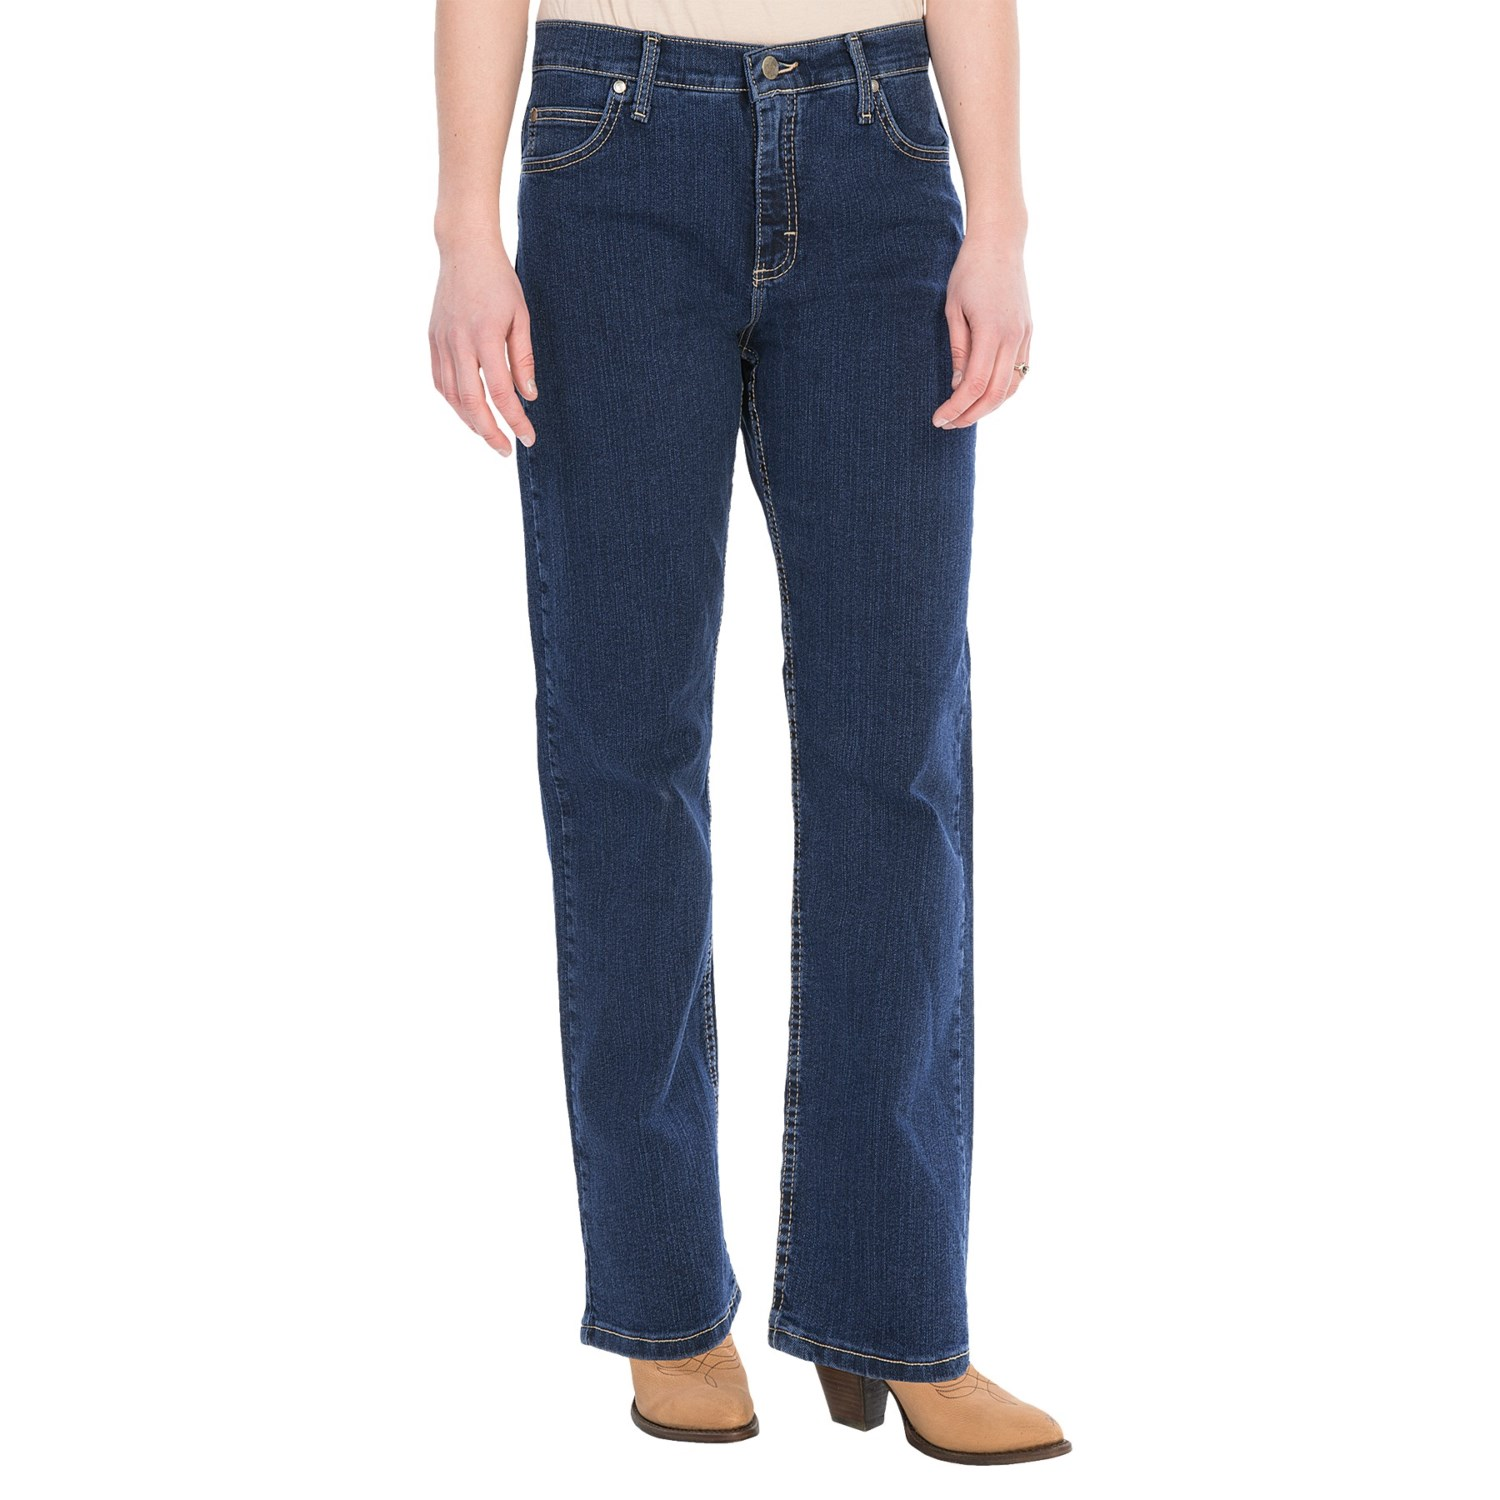 Free shipping BOTH ways on Jeans, Women, Slim Straight Fit, from our vast selection of styles. Fast delivery, and 24/7/ real-person service with a smile. Click or call